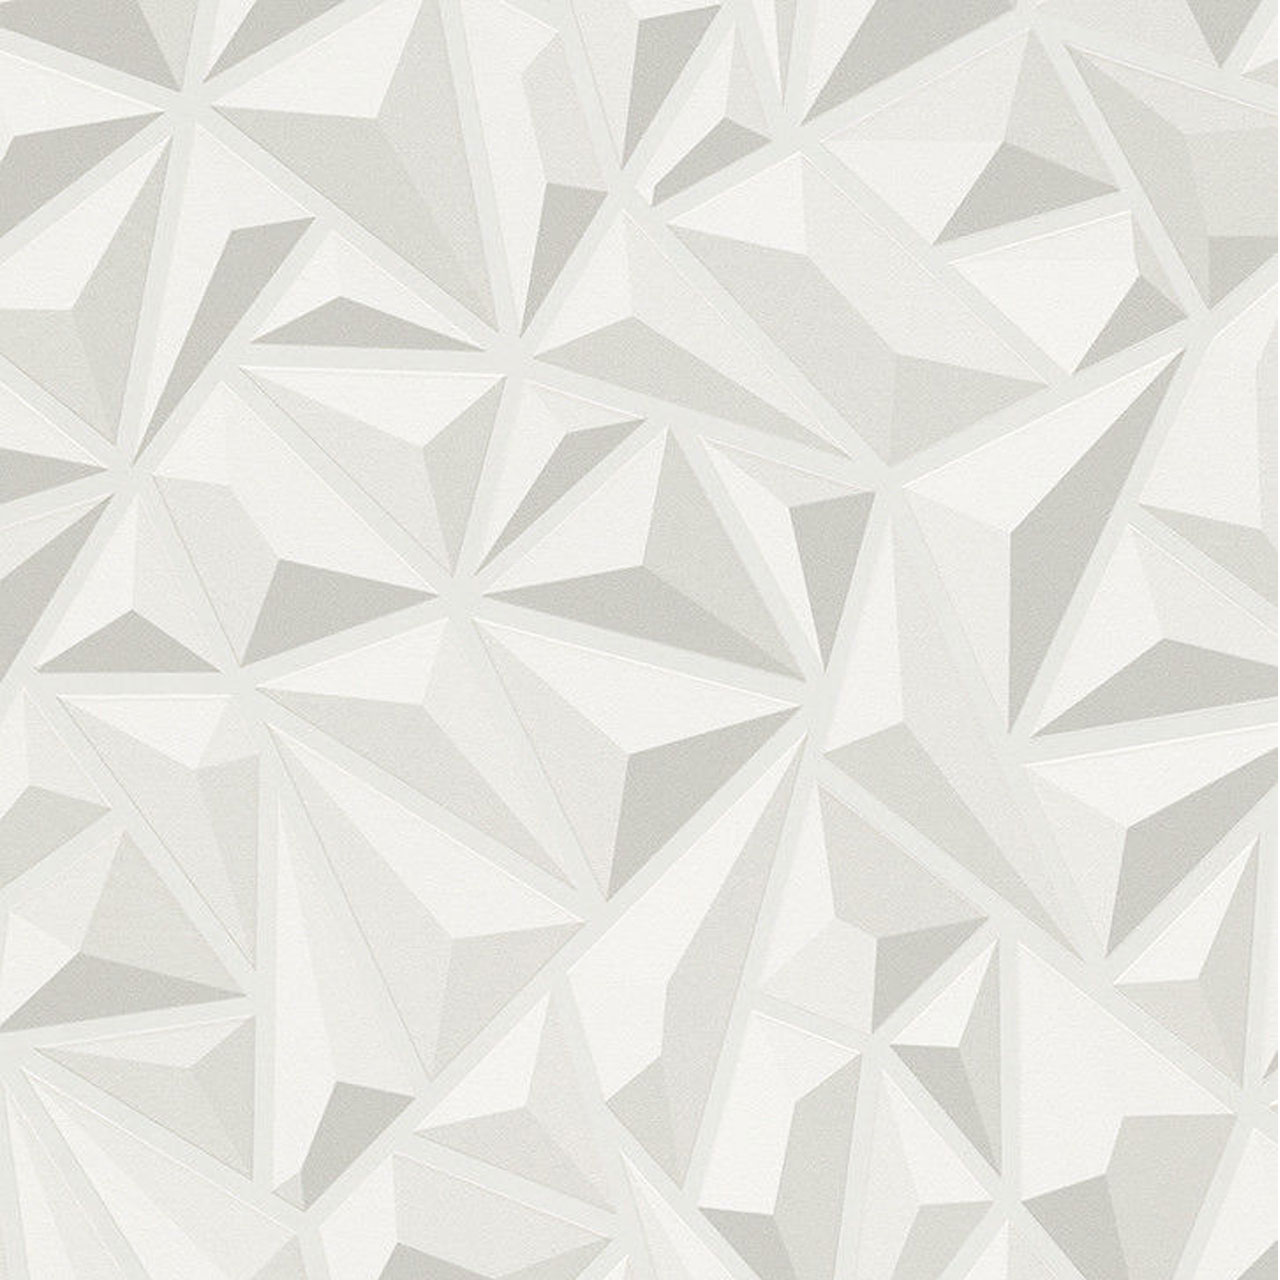 3d effect white grey geometric wallpaper textured luxury for Modern textured wallpaper